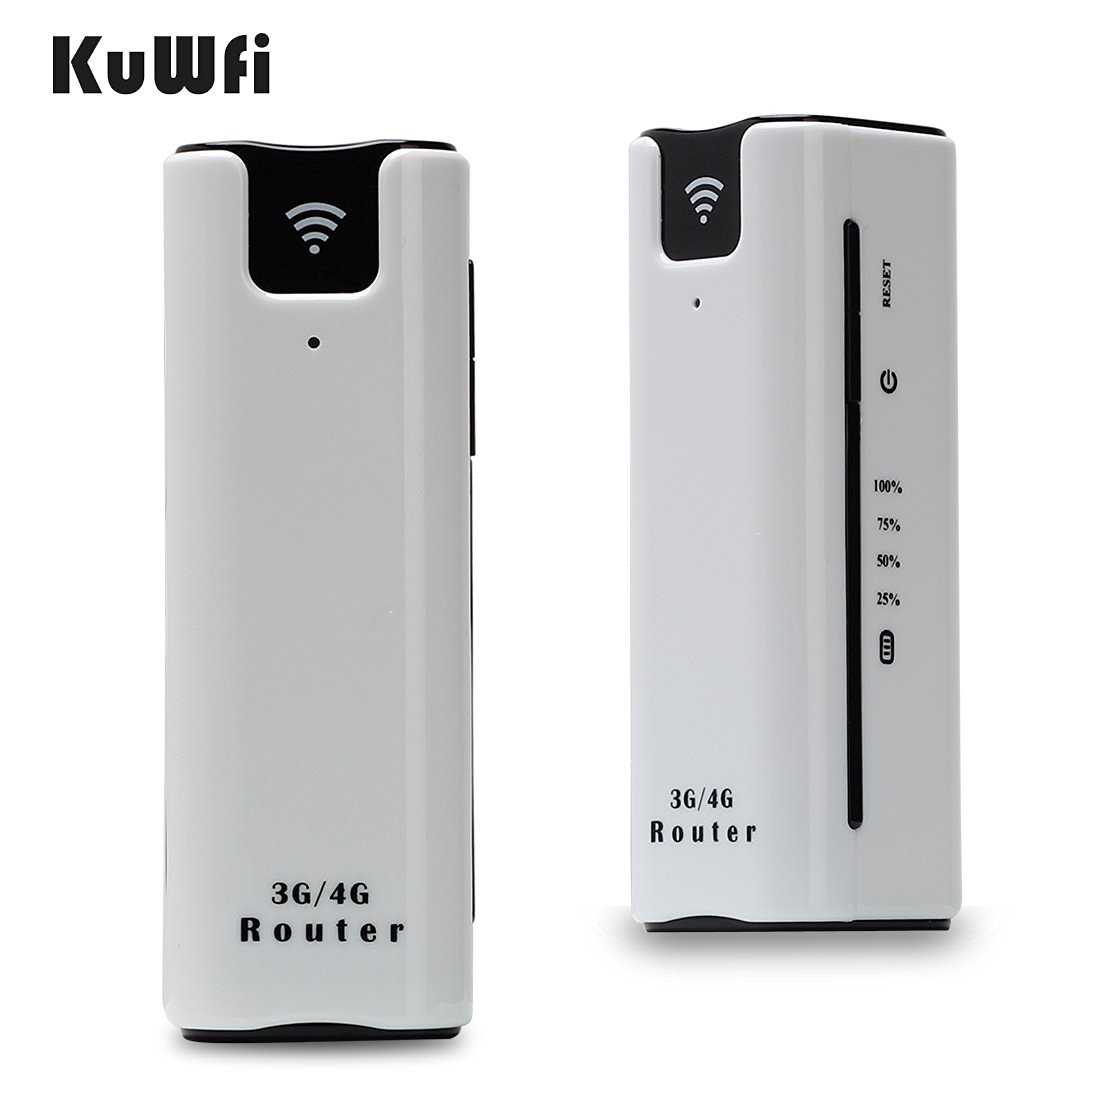 KuWFi Smart Moblie WIFI hotspot 3G router with sim card slot with Power Bank 2200Mah Portable WiFi 3G Wireless Router Support 2100MHZ network Power bank 3G wifi Router with SIM Card Sot